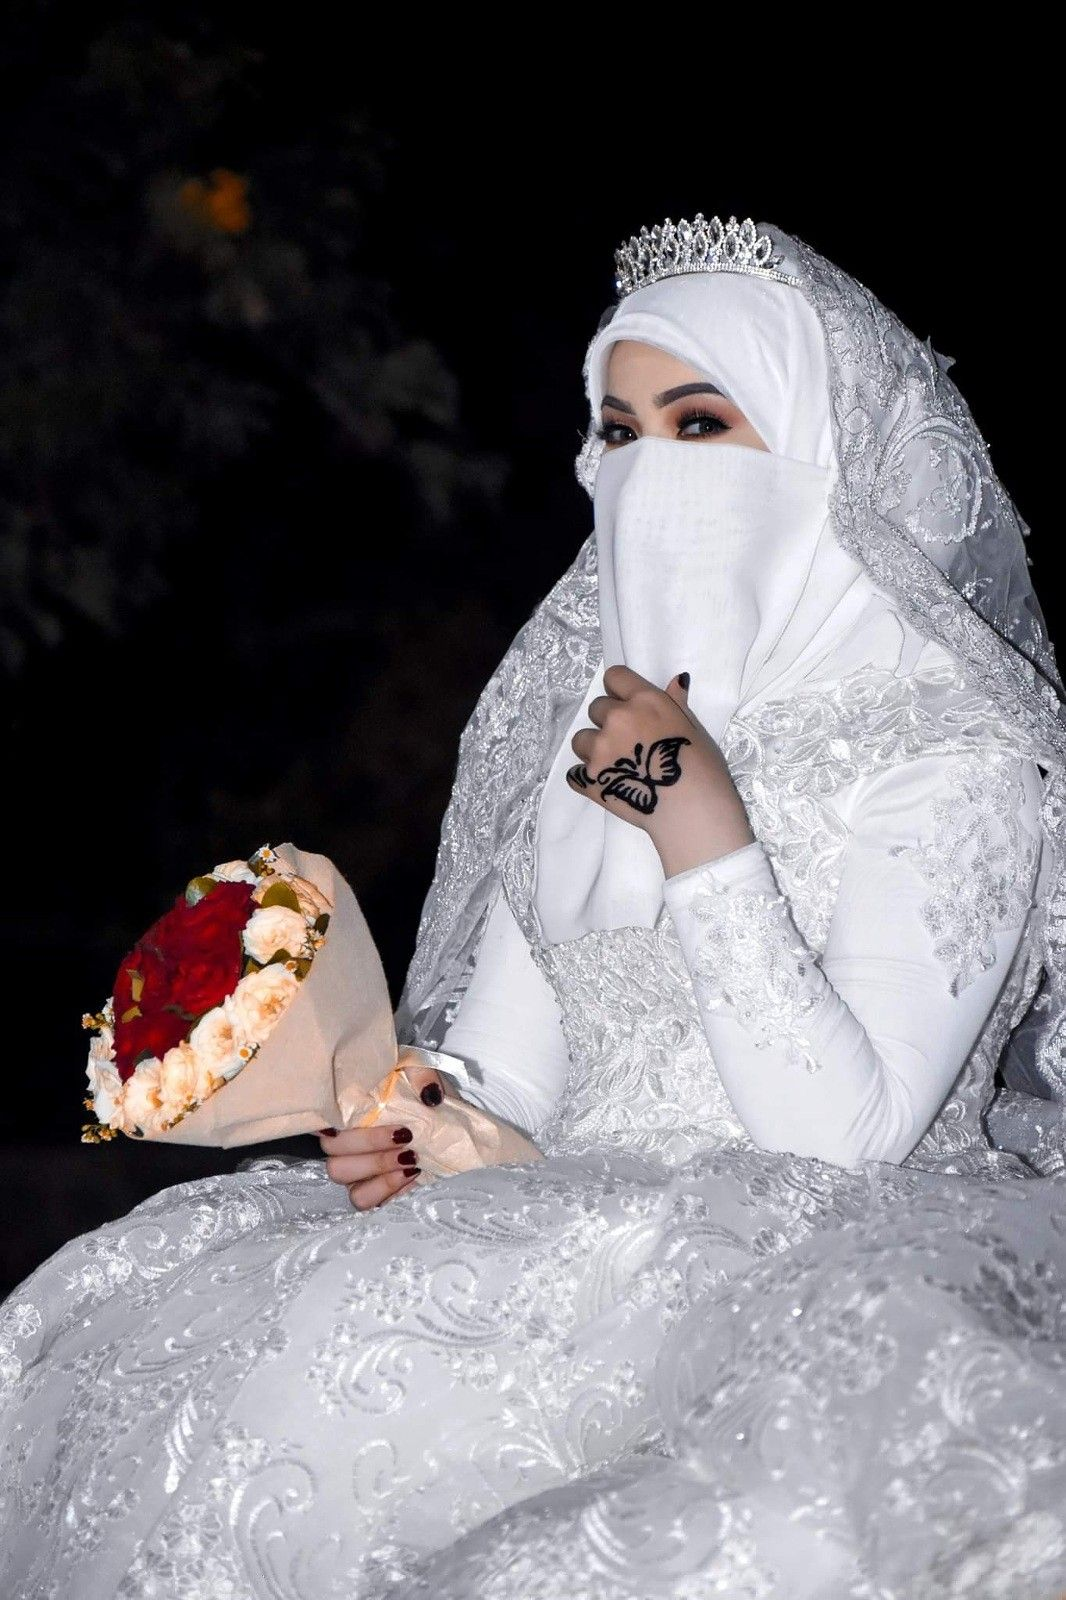 5d8a7e508 Pin by علي on عروس[با نقاب] | Muslimah wedding dress, Bridal hijab ...